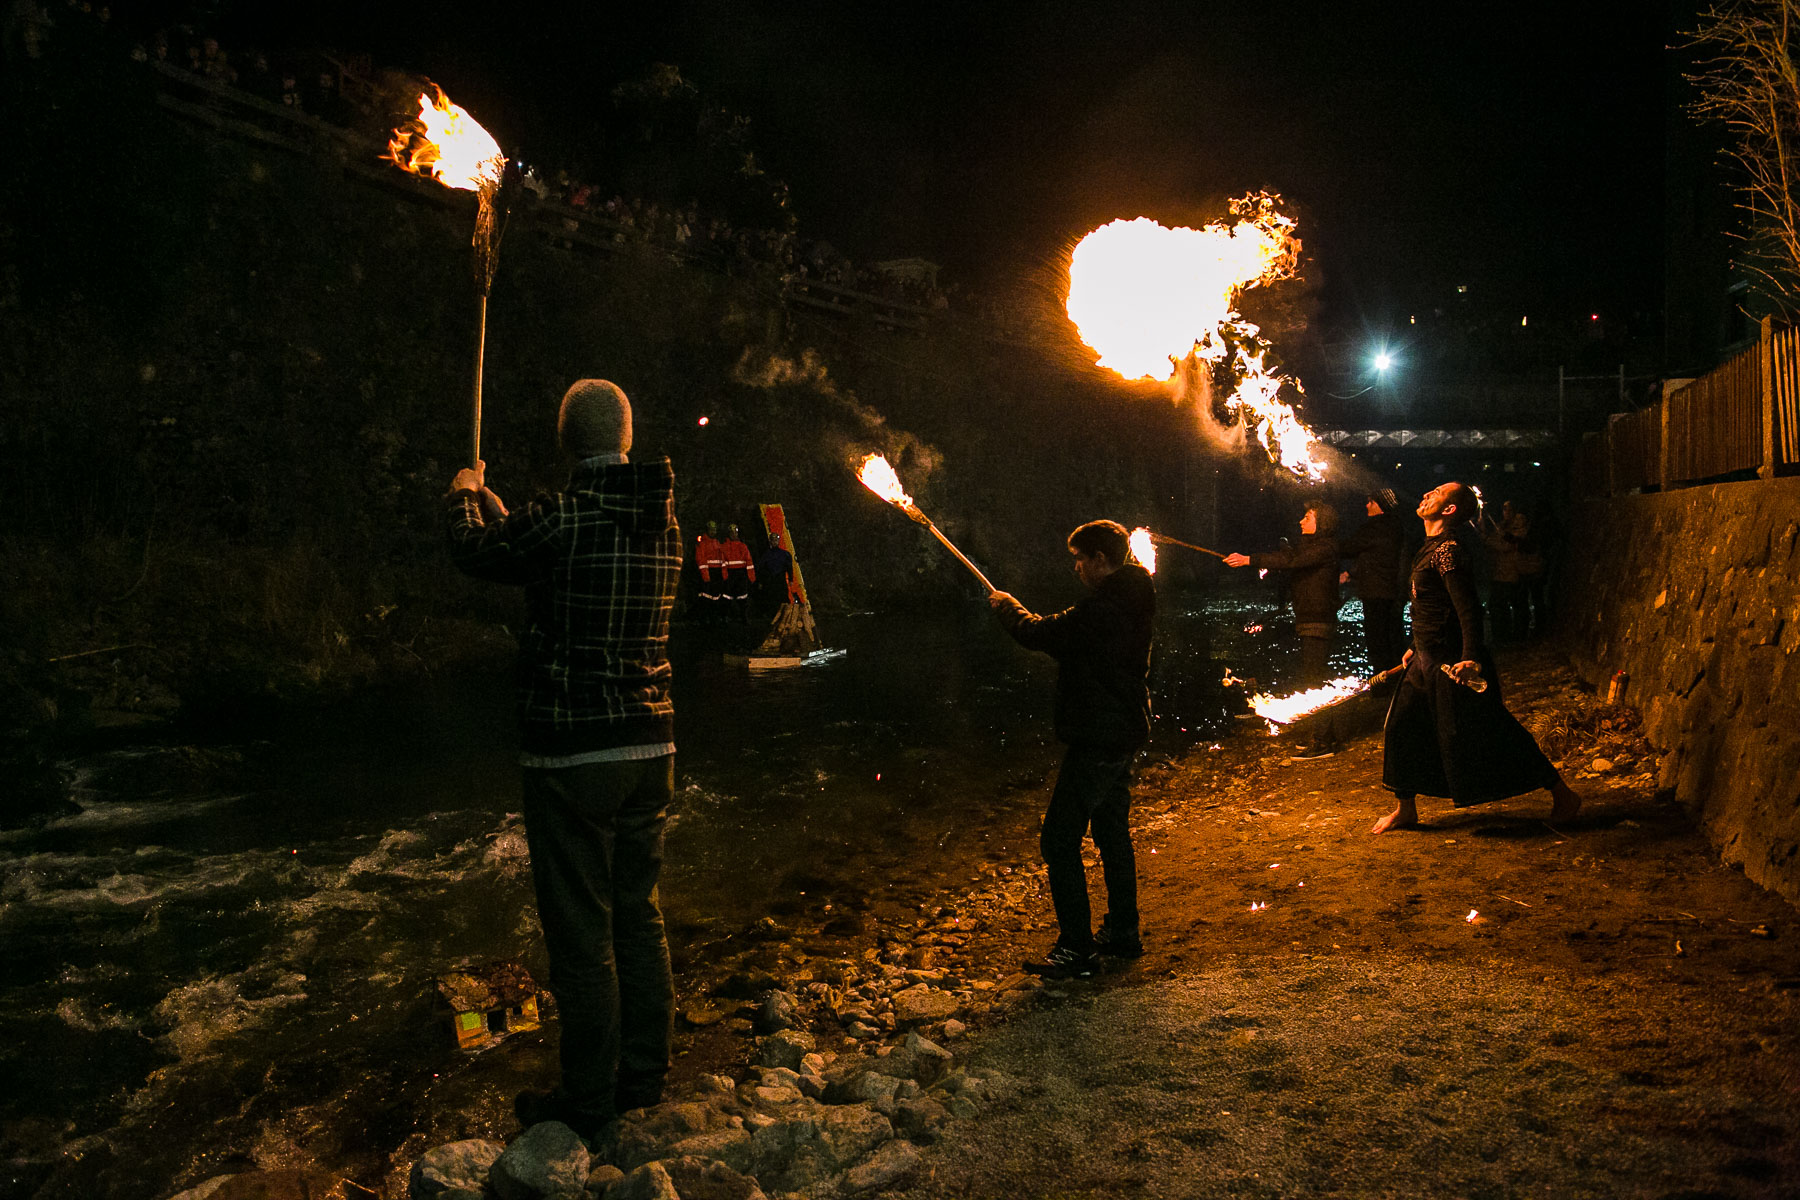 Fire handlers perform during a traditional event called Light in the water, in which model houses and other objects, the so called {quote}gregorcki{quote} are lit with candles and thrown in the water to symbolize the coming of spring, in Trzic, Slovenia, on March 11, 2016, the eve before St. Gregory's Day that was once the first day of spring.